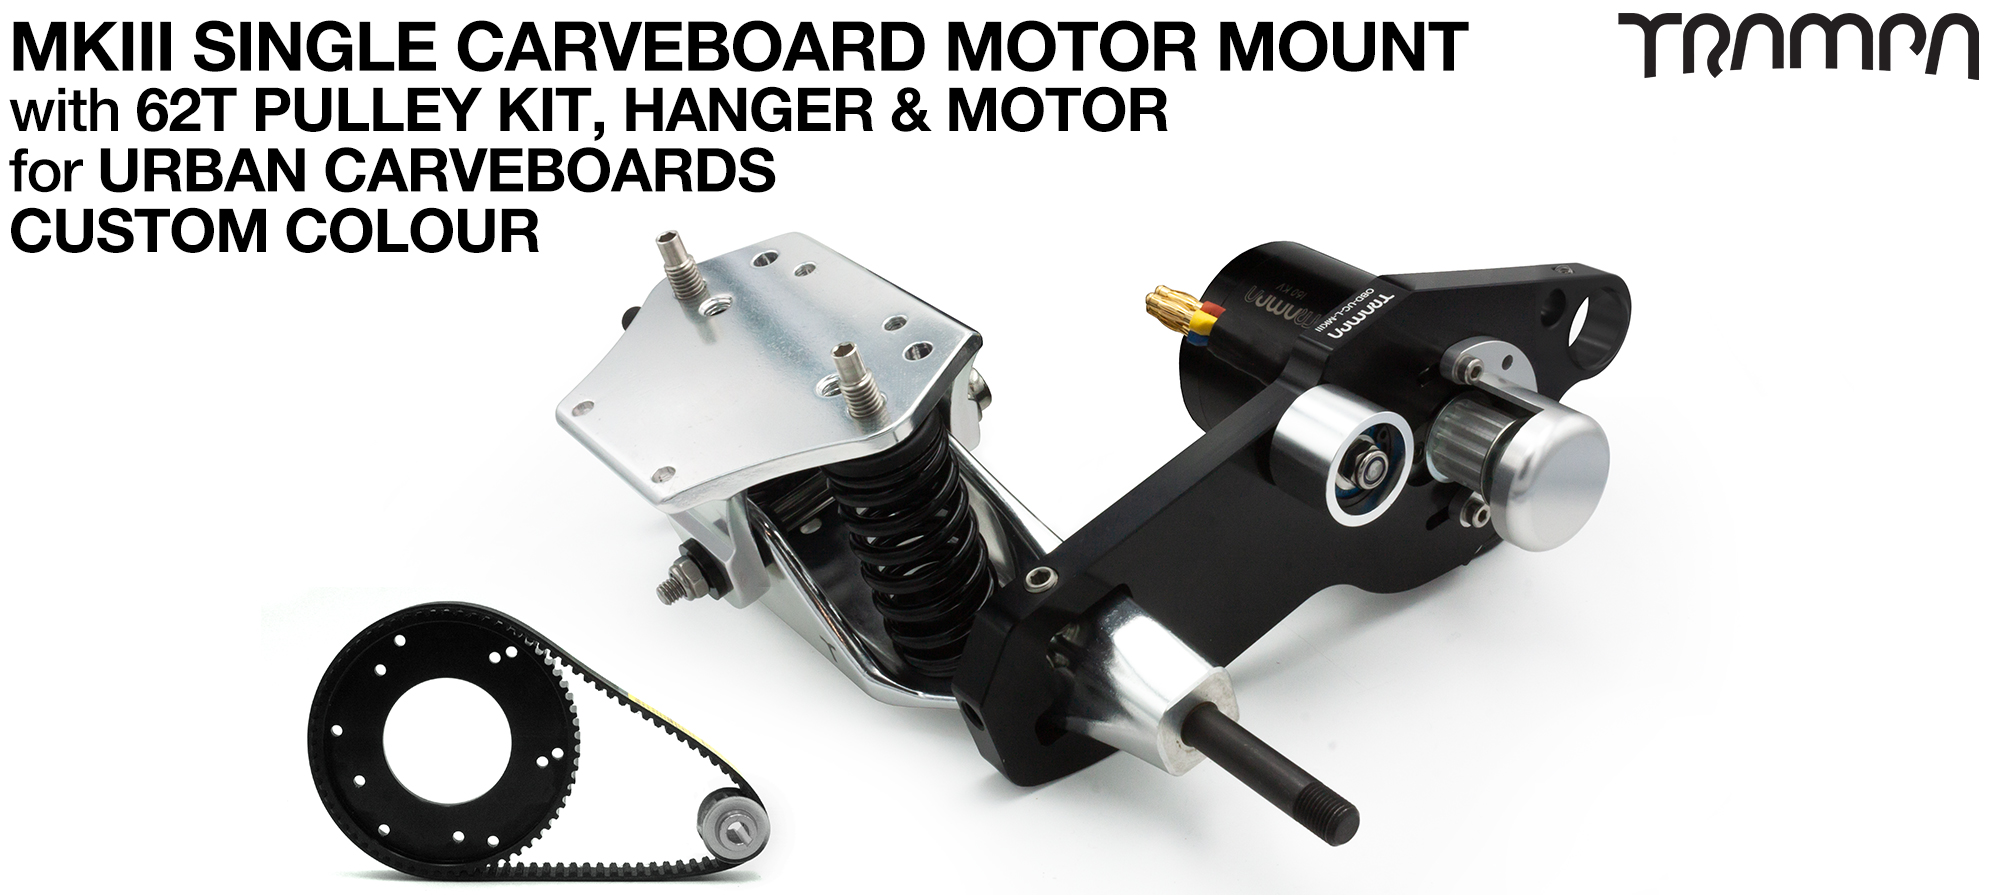 MkIII URBAN CARVEBOARD Motormount on a TRUCK with 44 Tooth Pulley Kit & Motor - SINGLE